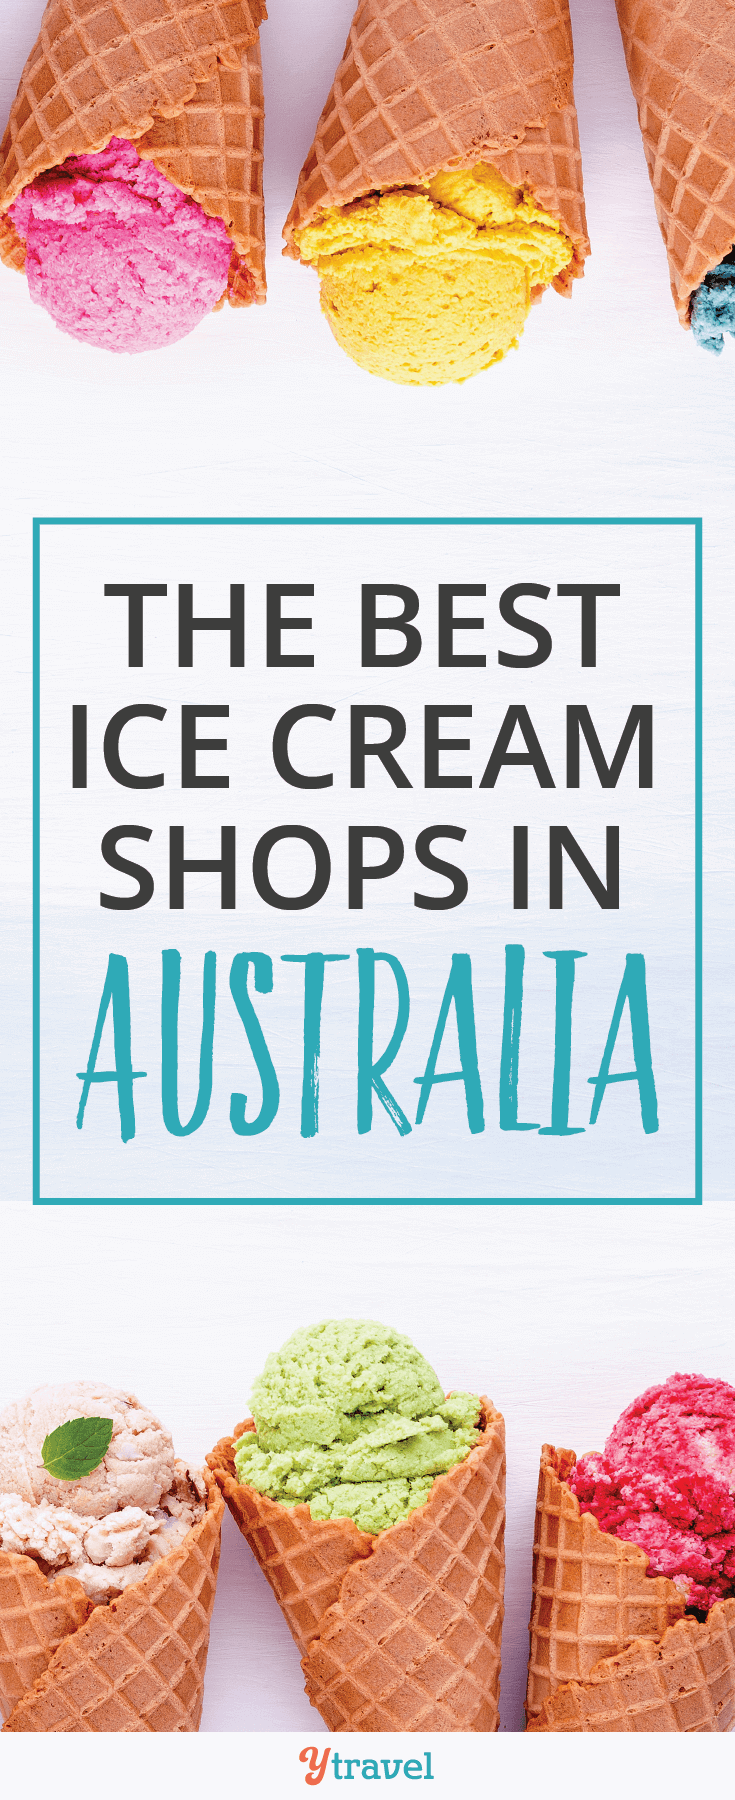 On the hunt for the best ice cream shops in Australia? Look no further!